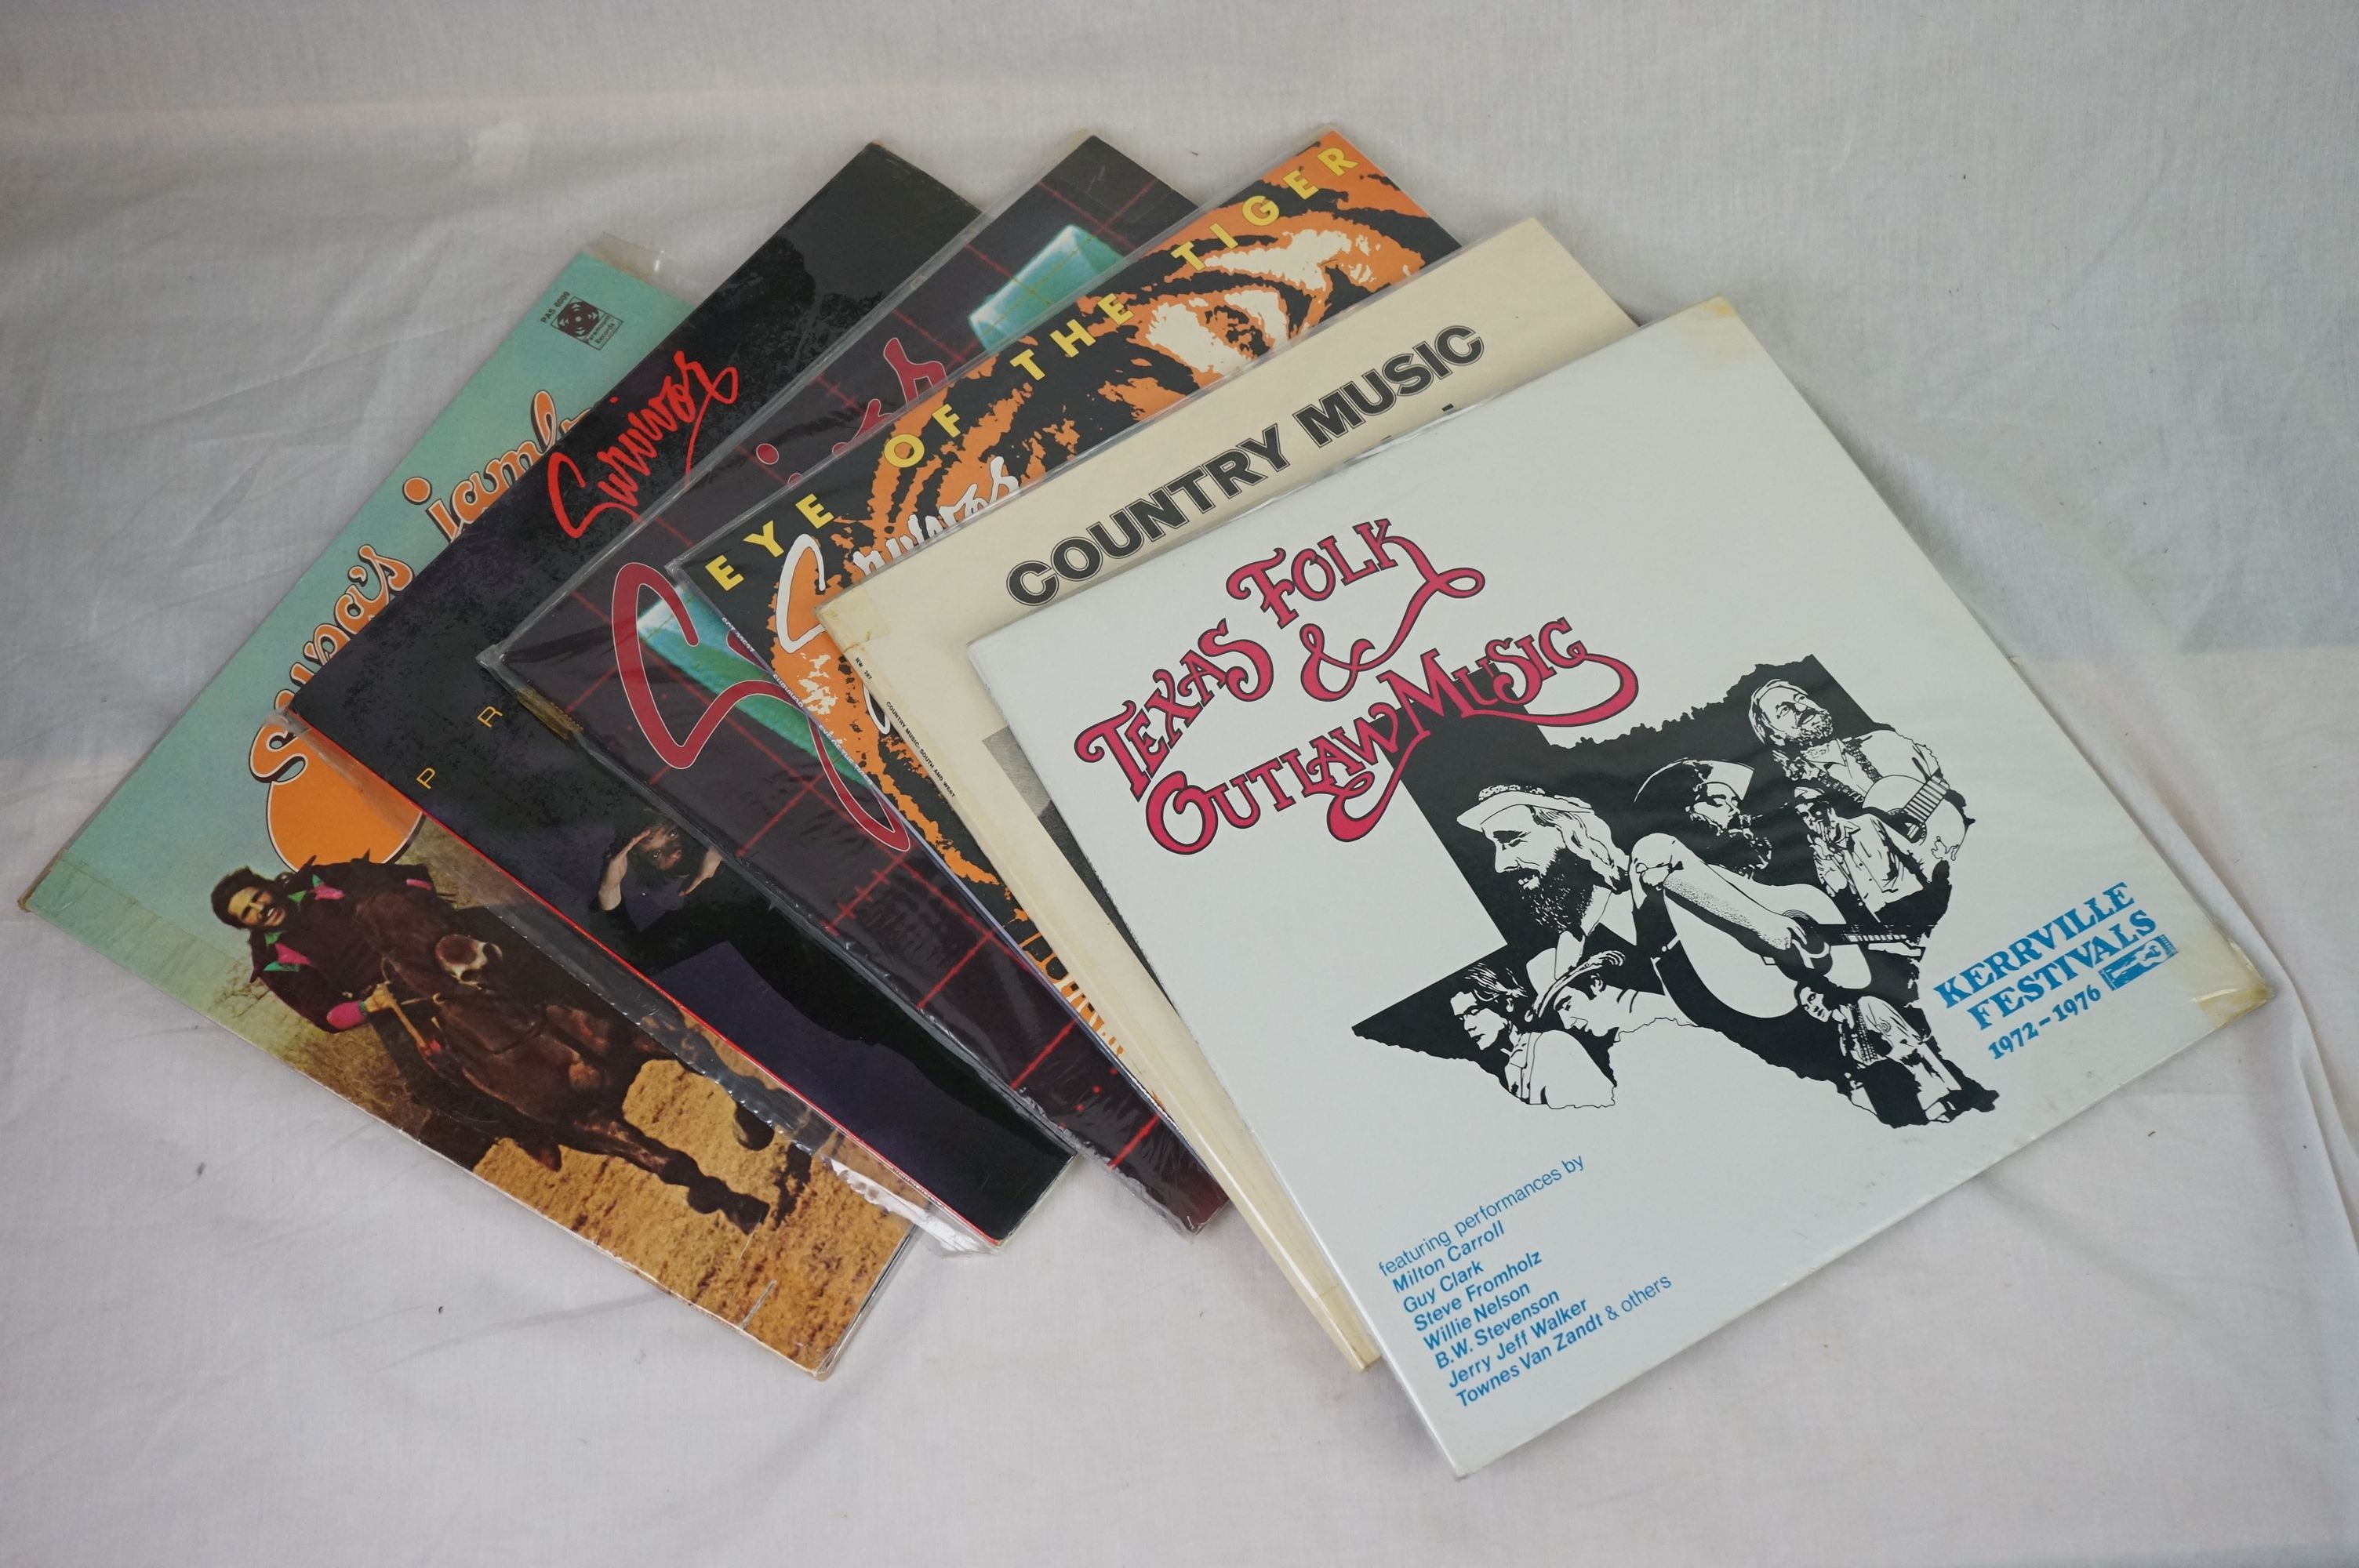 Vinyl - Around 200 LPs to include Country, Rock n Roll, Rockabilly, Compilations etc, sleeves and - Image 3 of 3